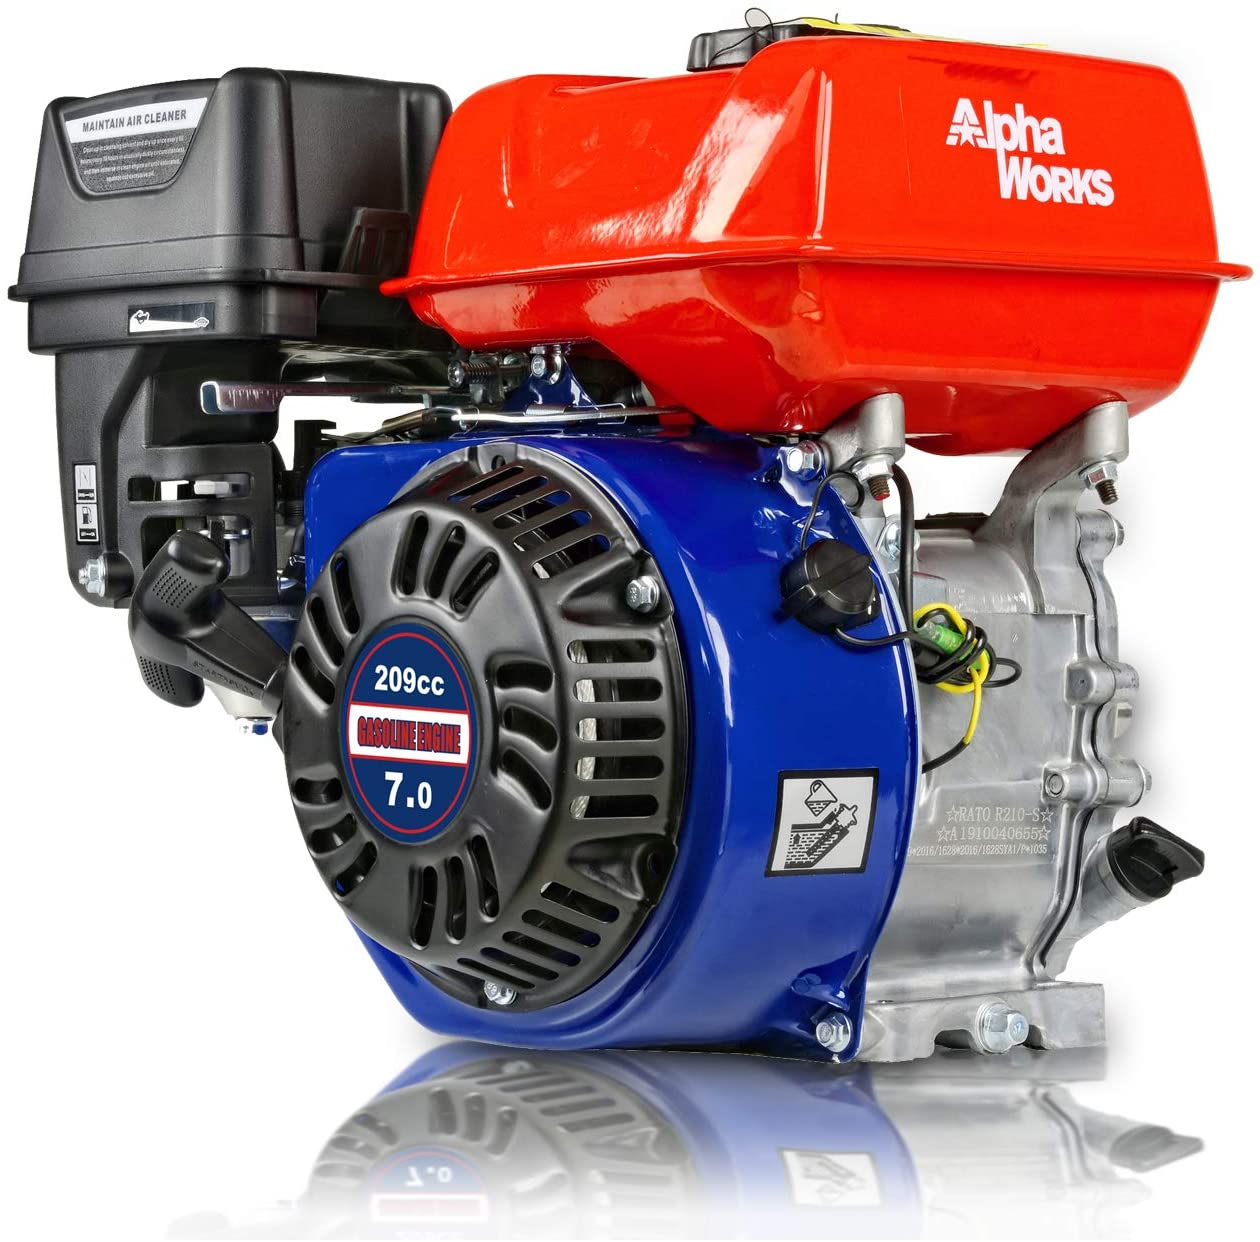 "AlphaWorks Gas Engine 7HP 209cc Motor Horizontal Cylinder 4 Stroke OHV Recoil Start 3600RPM 8.85Ft-Lbs/12Nm Torque 3/4""x2.43"" Shaft 3/16"" Keyway 5/16""-24 UNF End Tapped EPA/CARB Certified CA Ship-able"